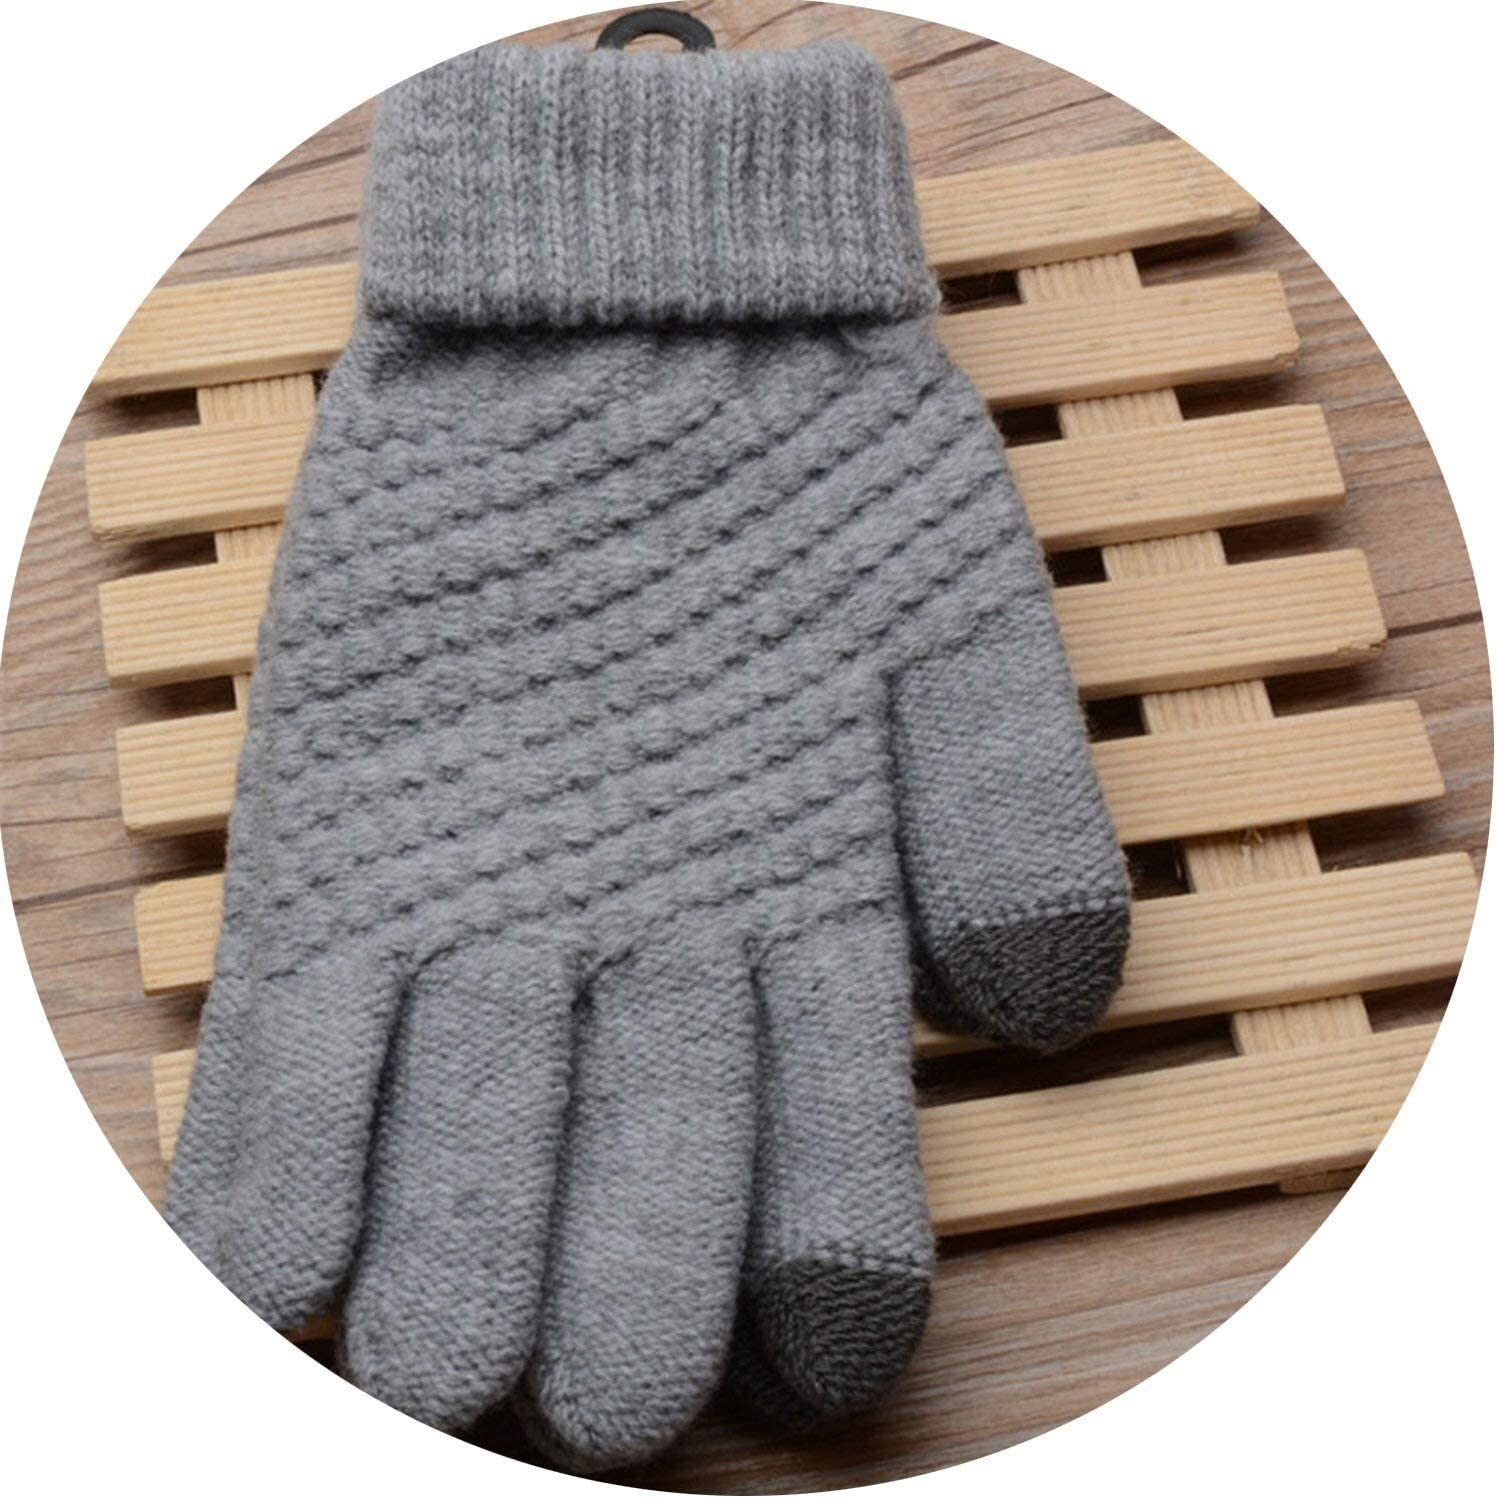 Samanthaa Warm Gloves Solid Magic Gloves Women Girl Female Stretch Knit Touch Screen Winter Warm Accessories Wool Guantes Mittens Gloves (Color : Grey, Size : Oneszie)